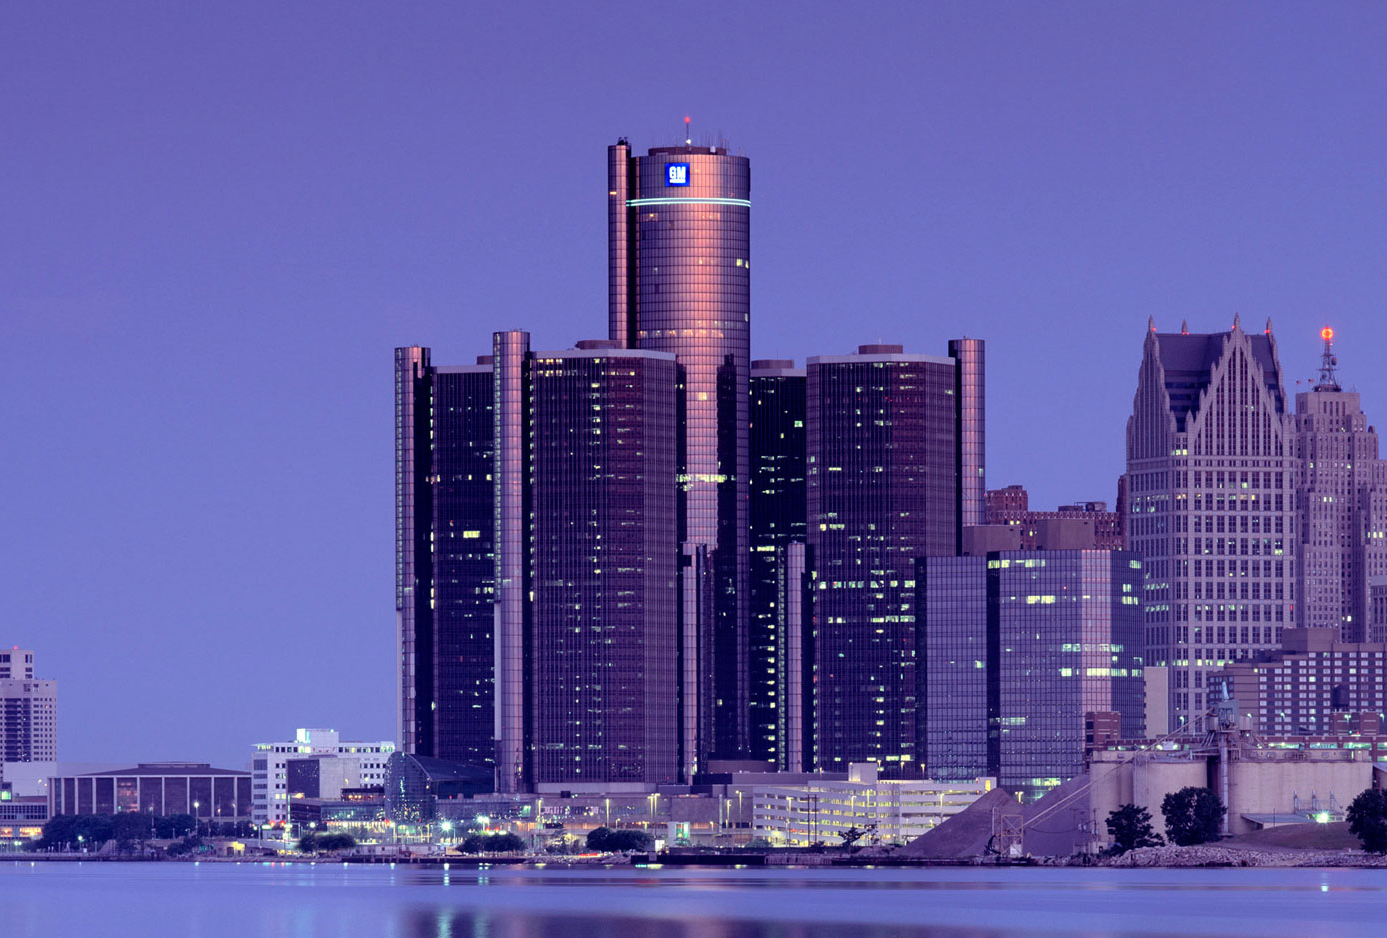 GM Renaissance Center - Real Estate Interests LLC